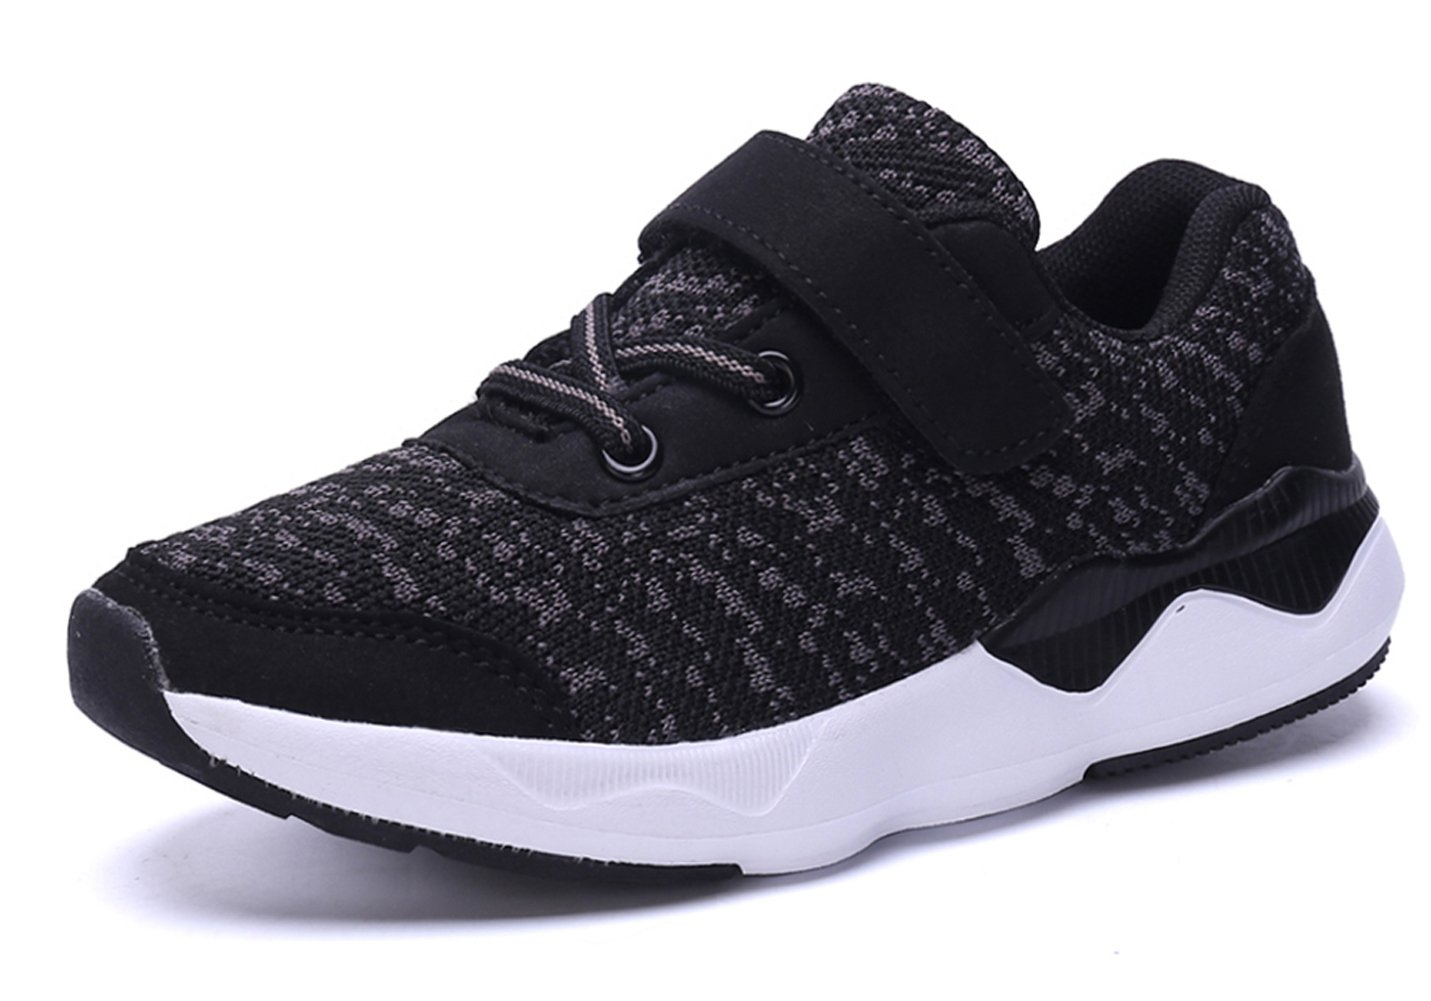 KARIDO Toddler Kids Lightweight Breathable Sneakers Athletic Running Shoes for Boys Girls A-Black 34